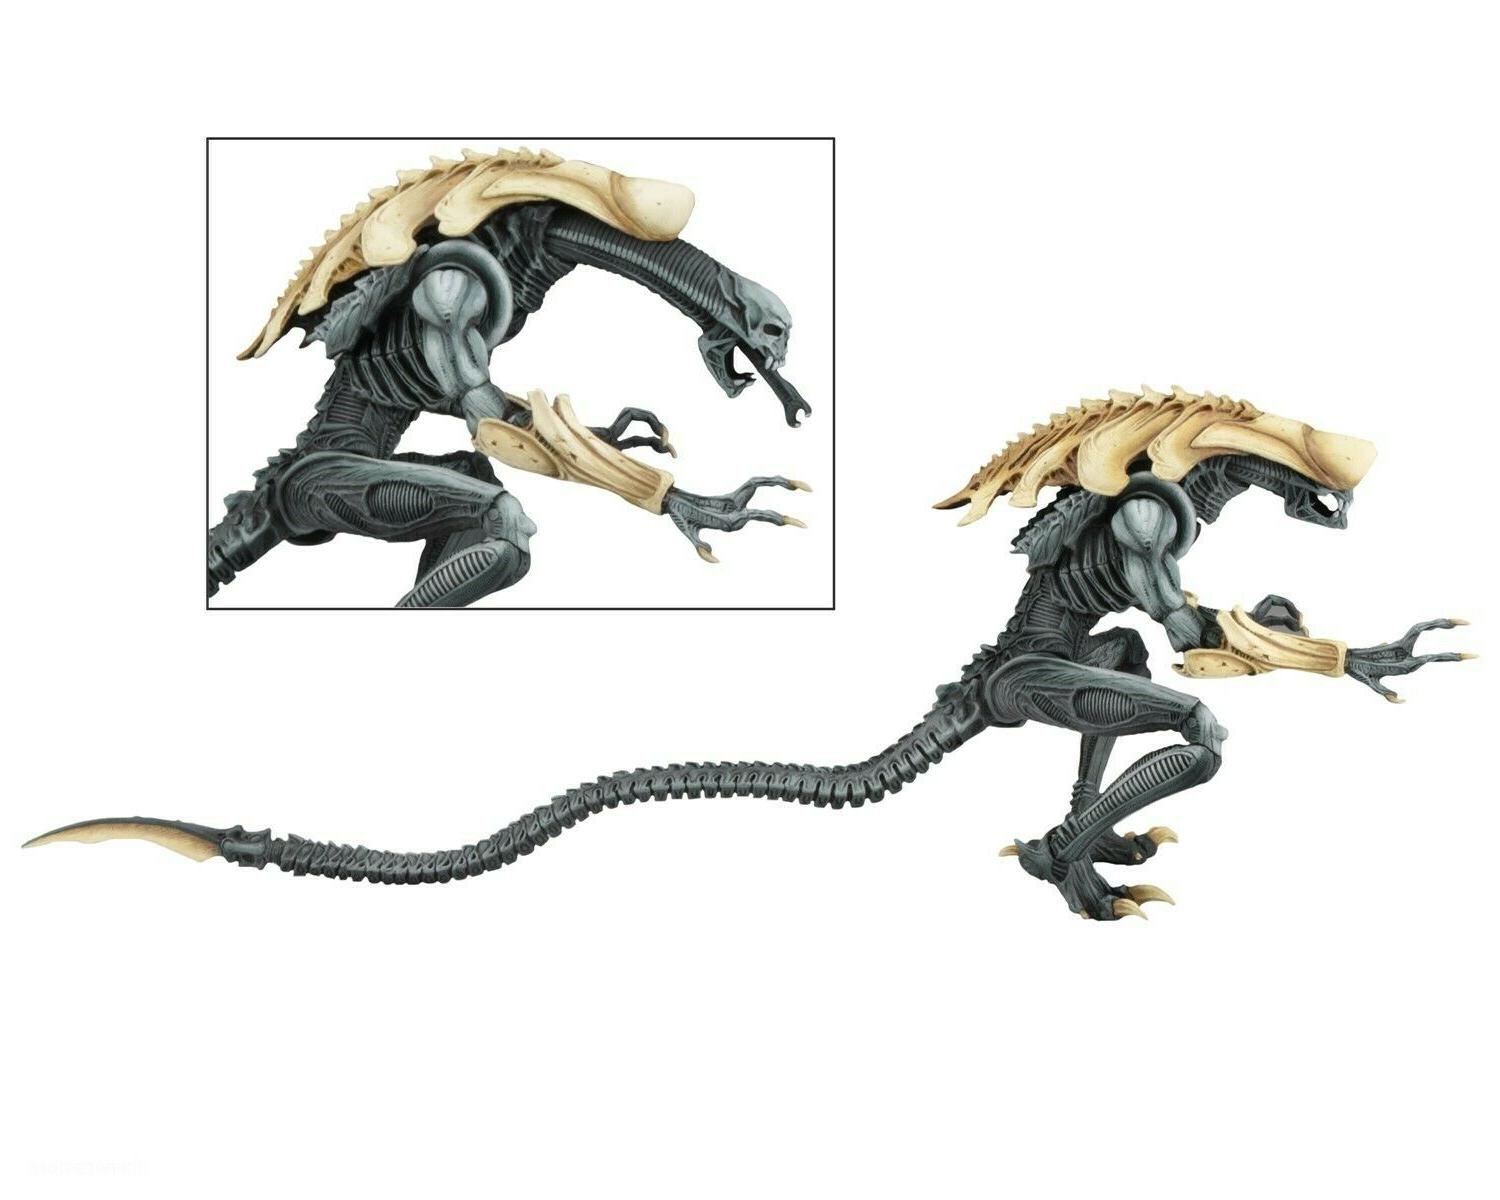 aliens vs predator arcade 7 scale action